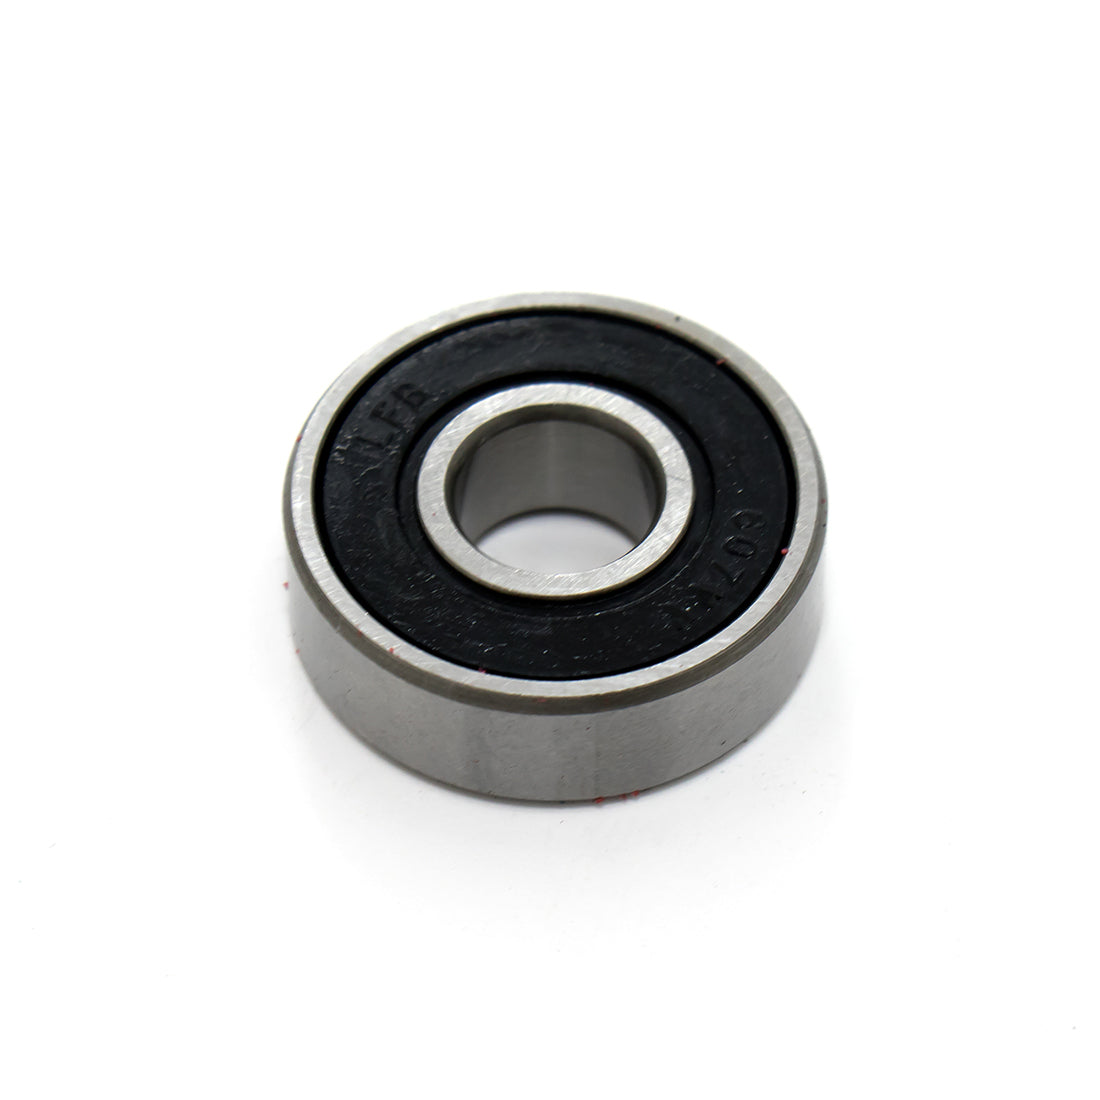 [MBA-011] 6201 bearing - (For Polisher)